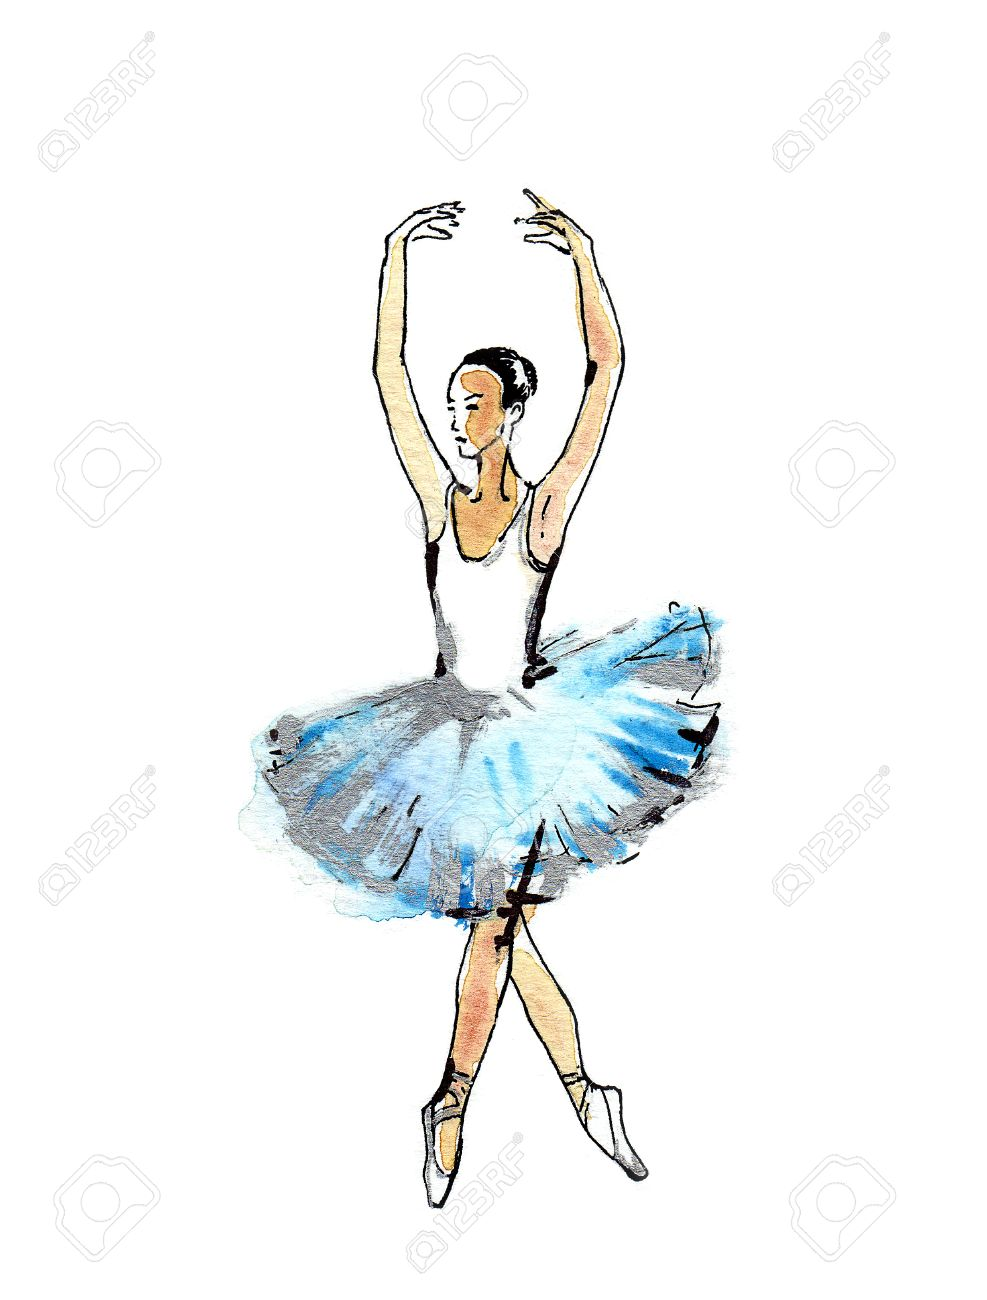 Ballet Dancer Handmade Black And Silver Drawing On A Blue Watercolor Stock Photo Picture And Royalty Free Image Image 49188481